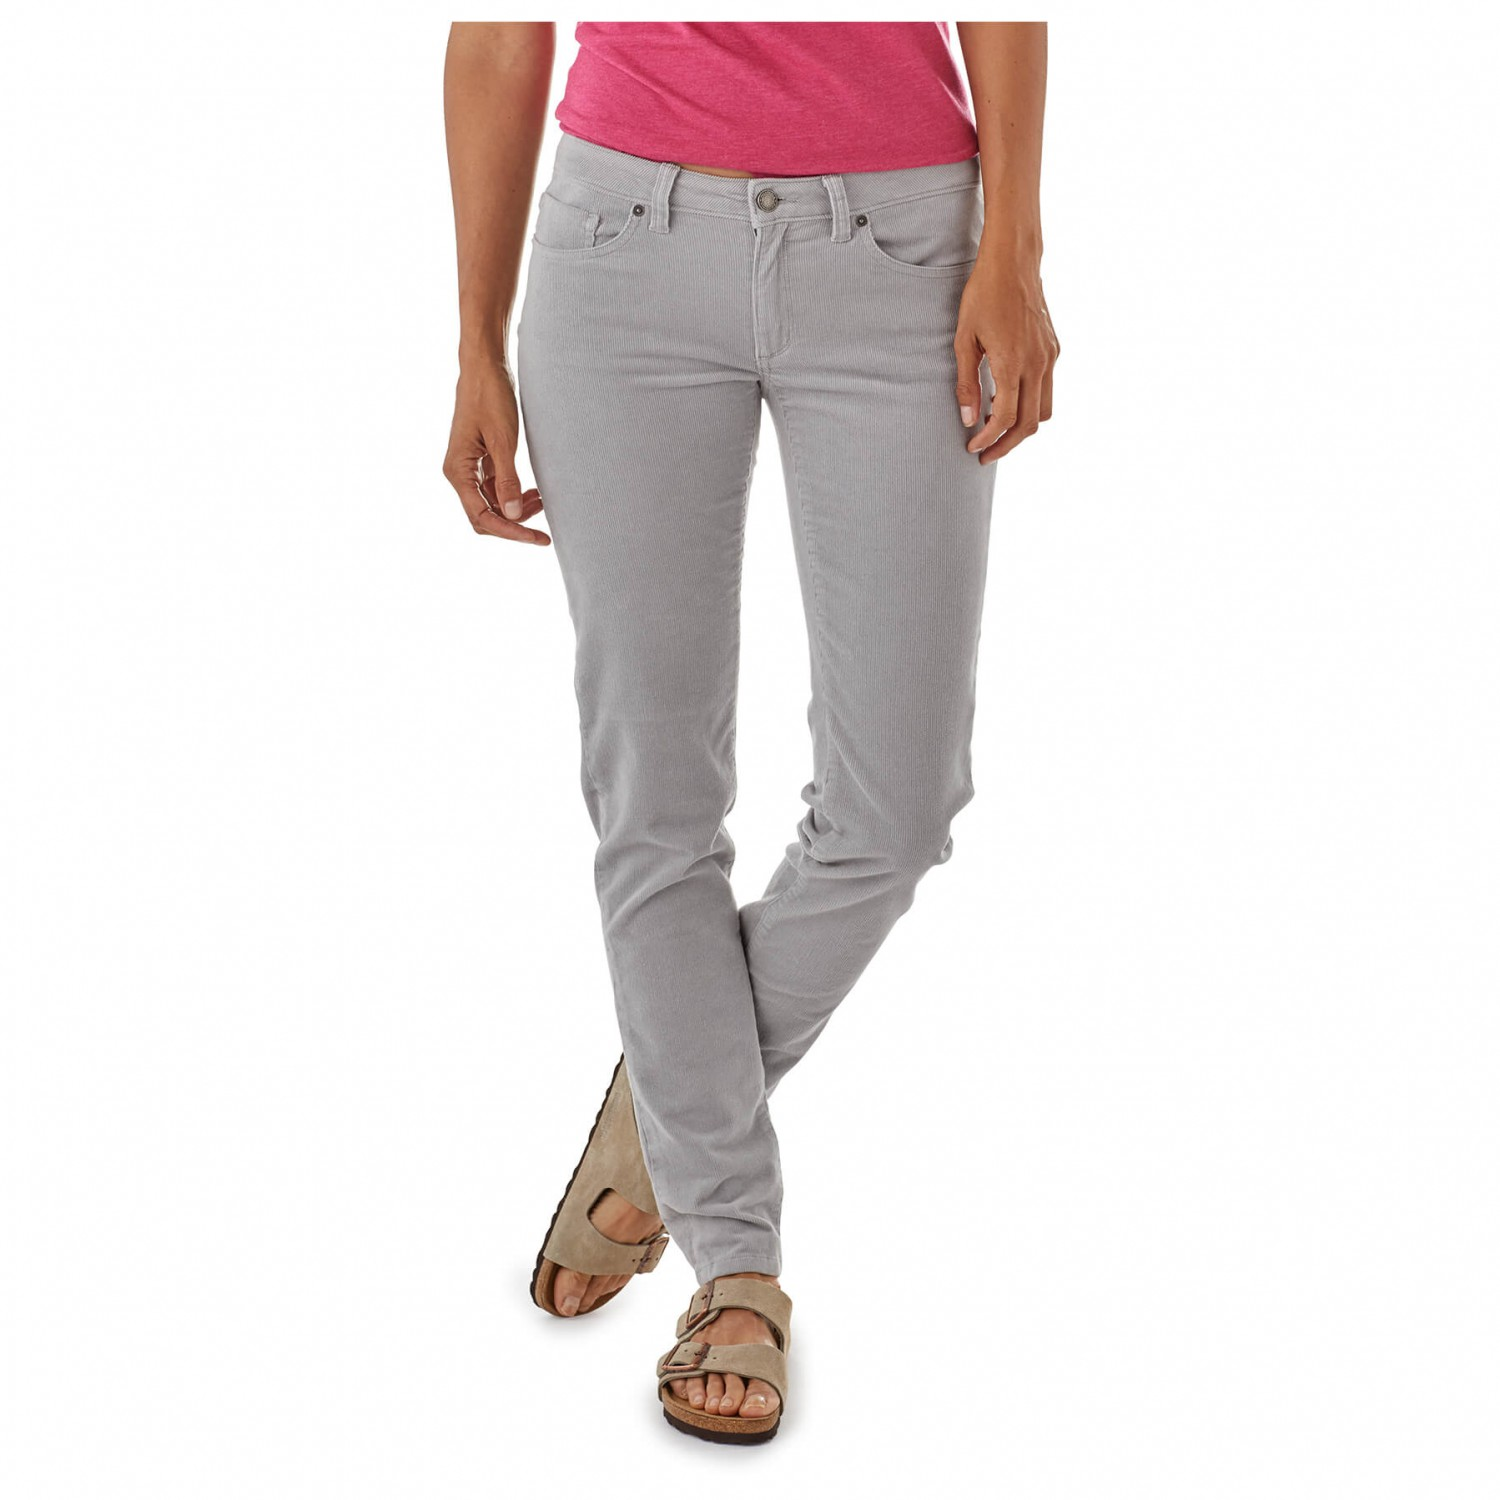 f52cb376b39ef ... Patagonia - Women s Fitted Corduroy Pants - Jeans ...